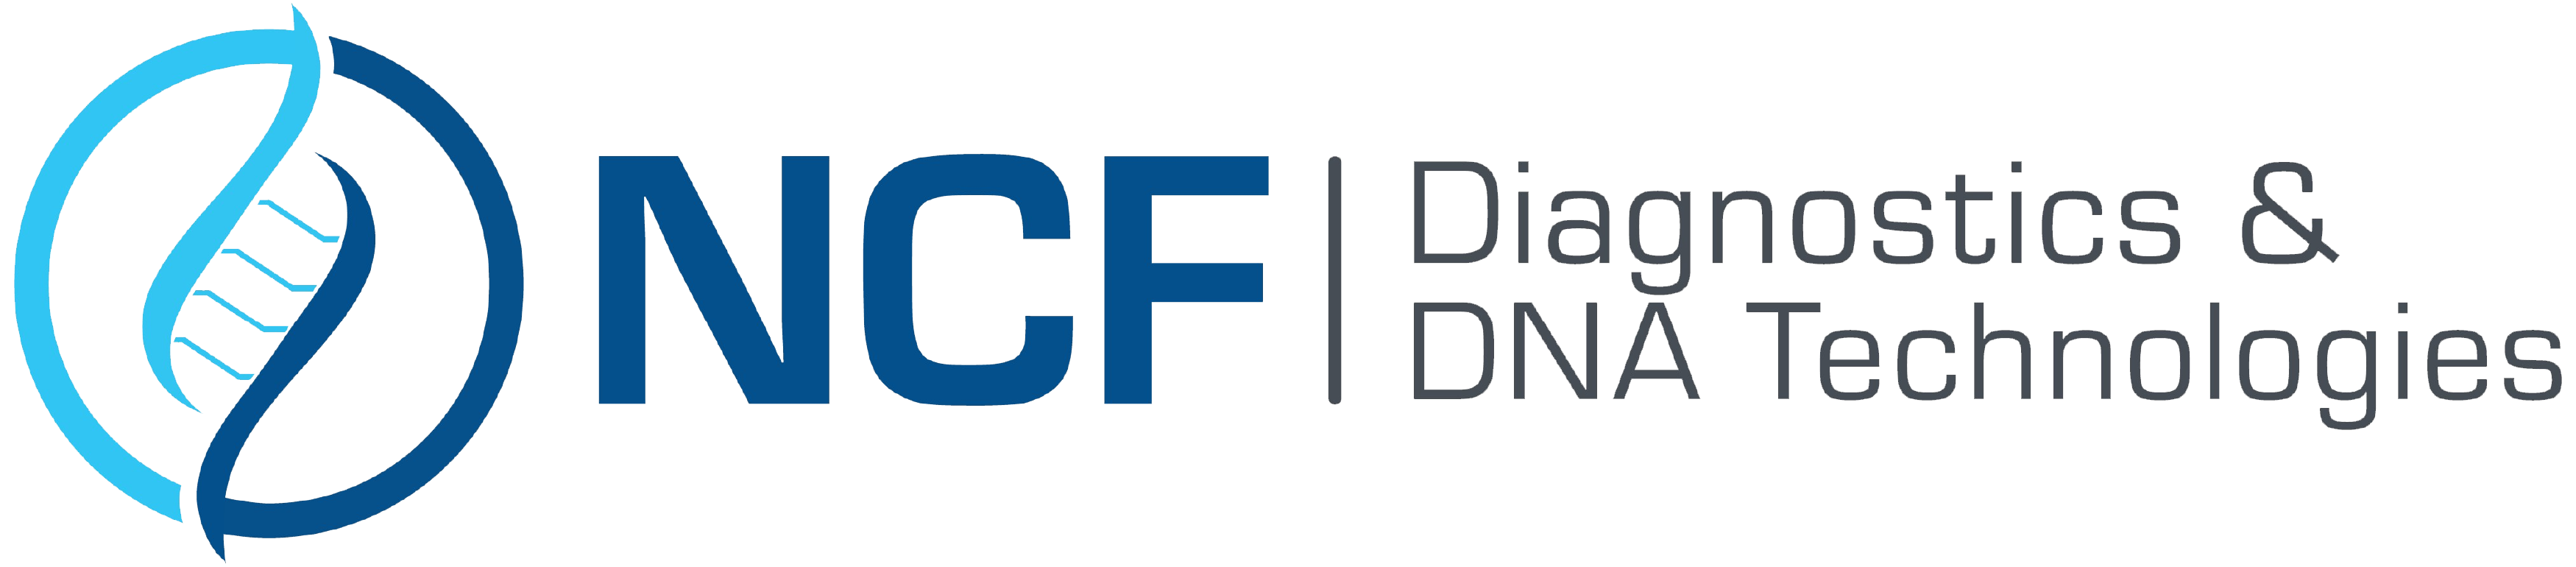 NCF Diagnostics & DNA Technologies. Same-Day Results for COVID PCR Testing